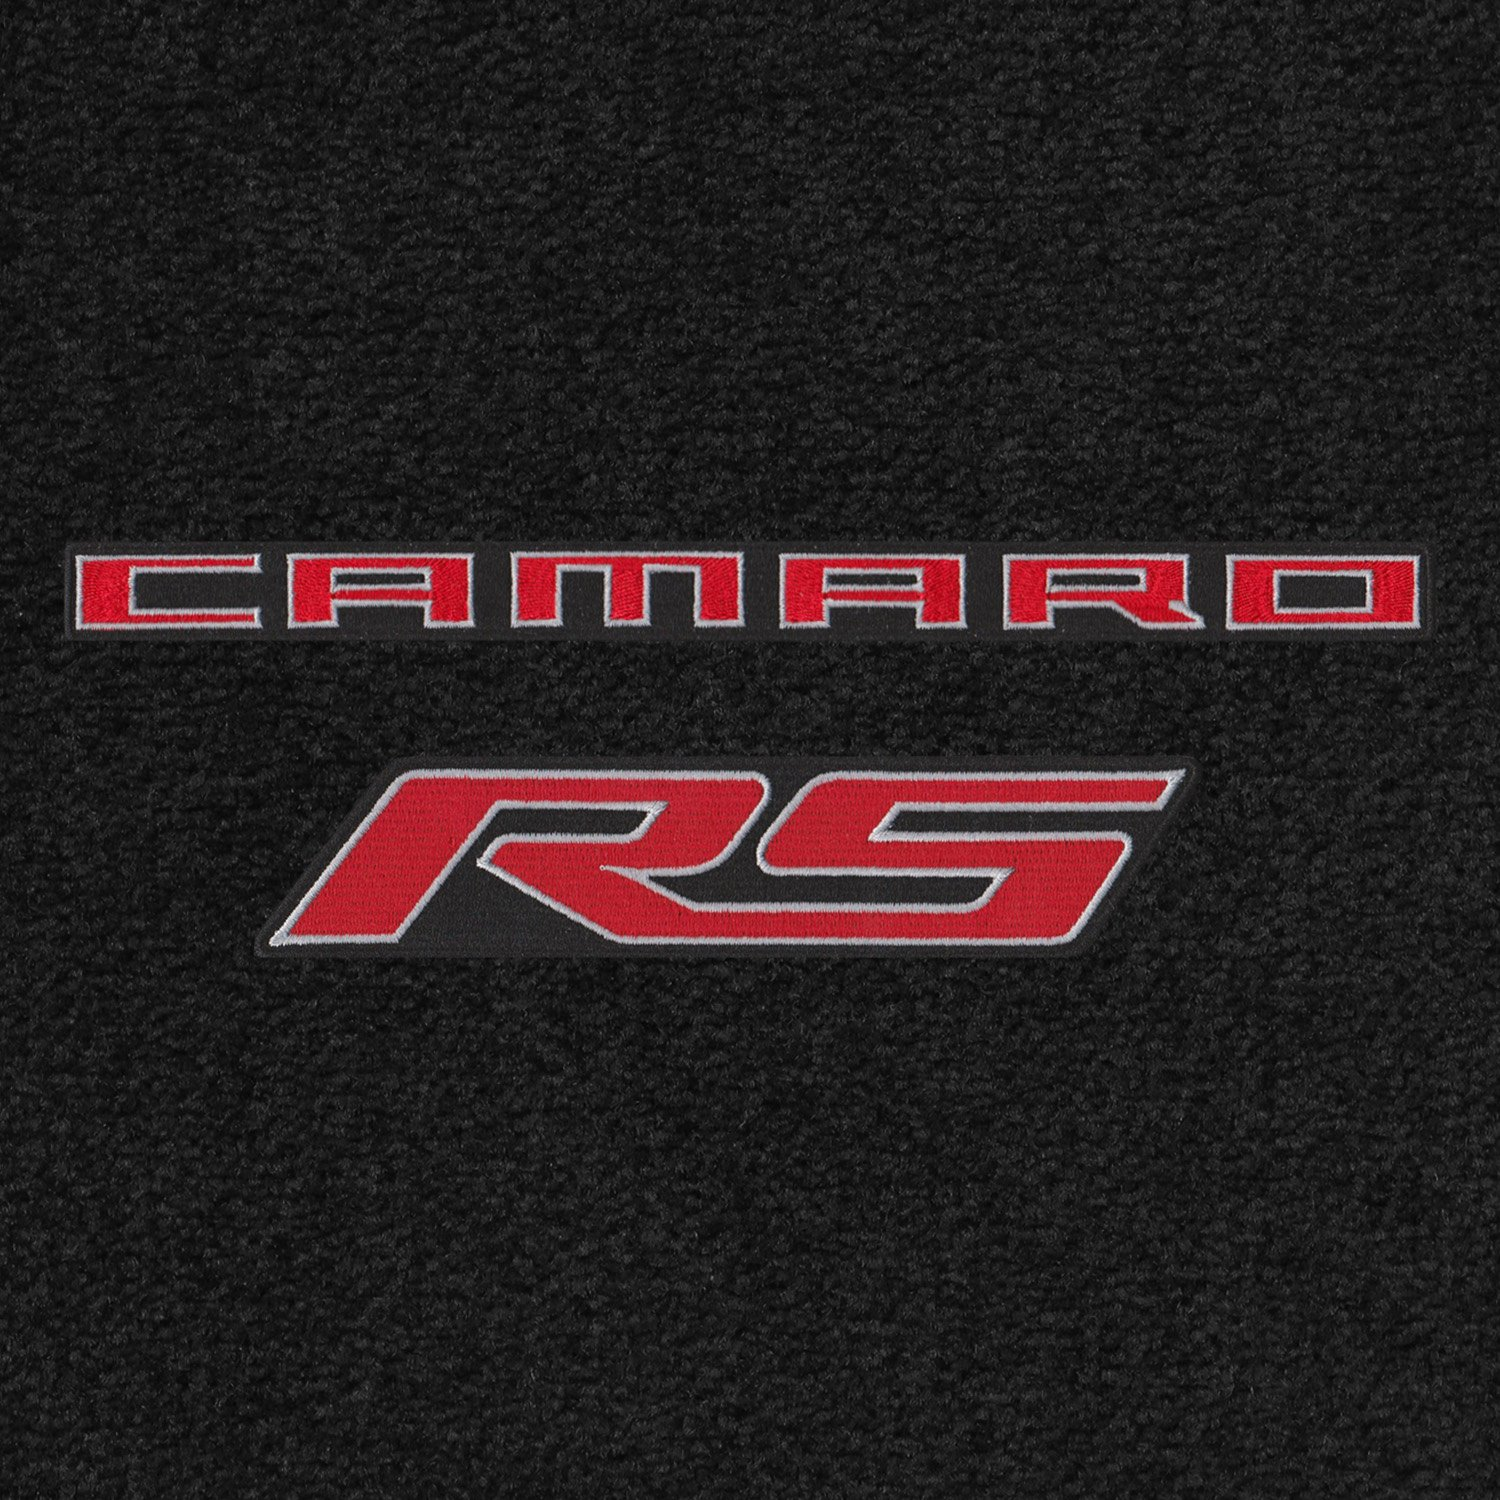 Lloyd Mats – Ultimatエボニー4pcフロアマットforカマロRS 2010 – 15 with Red Camaro RSロゴ B077RSJY3W